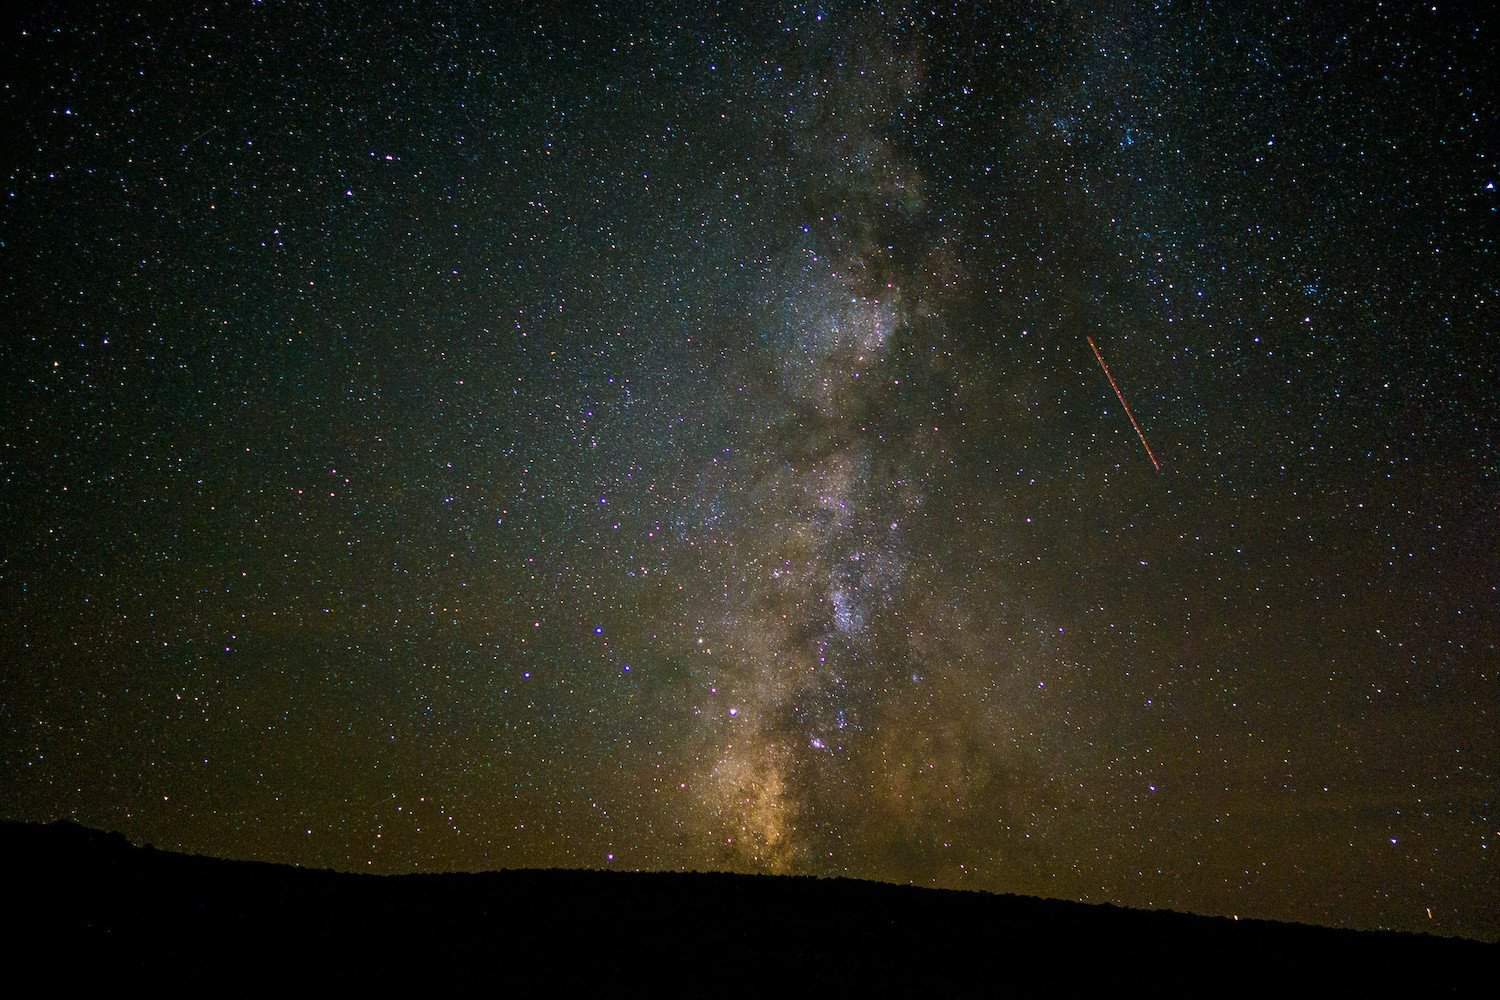 Best National Parks for Stargazing - Gunnison - Ryan Hallock via Flickr